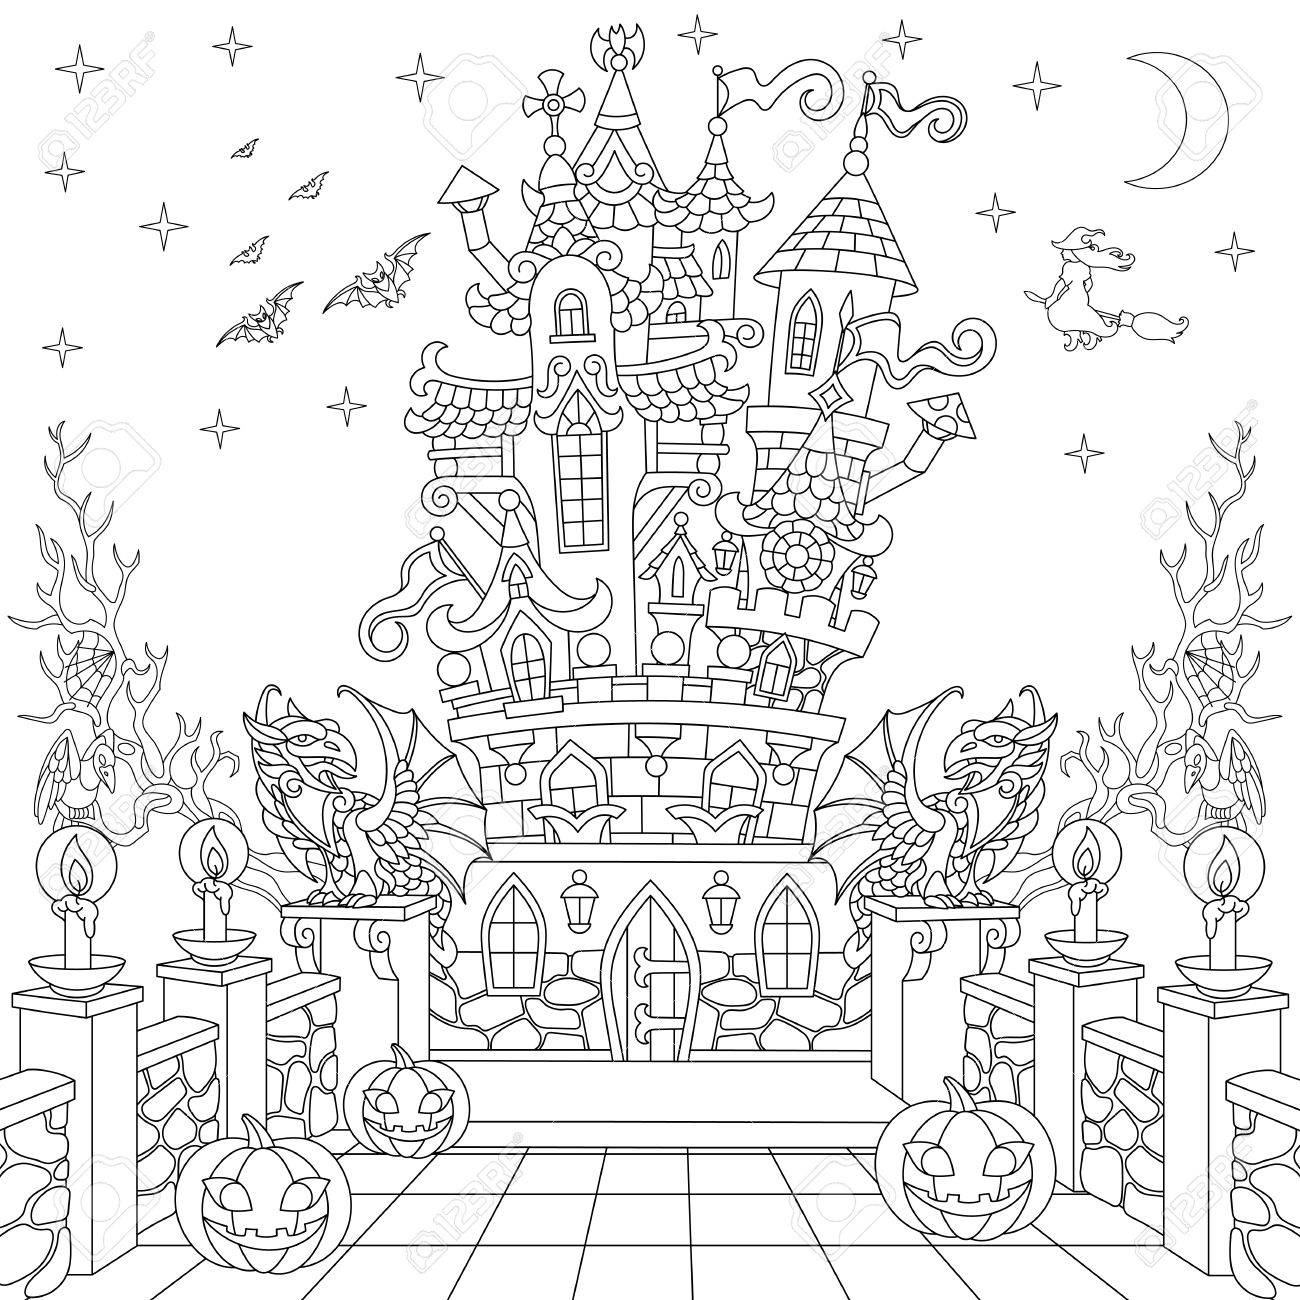 Halloween Coloring Page  Spooky Castle, Halloween Pumpkins, Flying